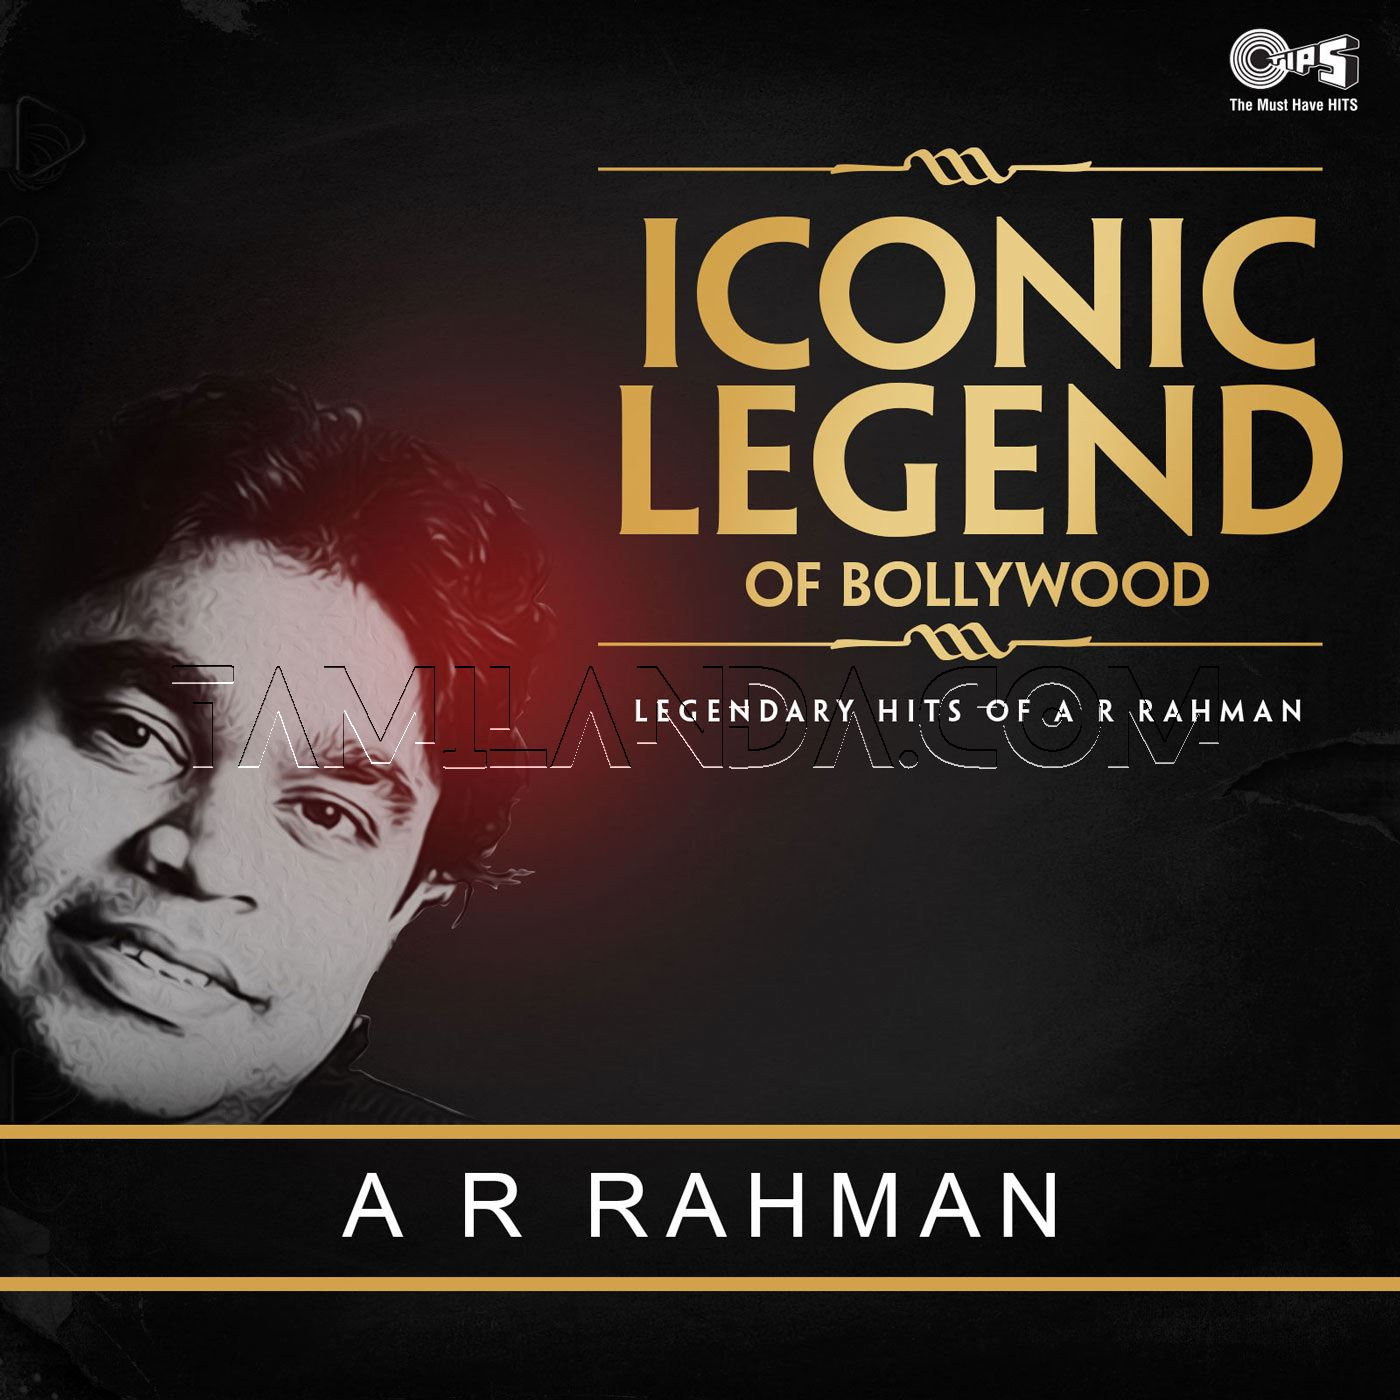 Iconic Legend of Bollywood – A. R. Rahman (2017)